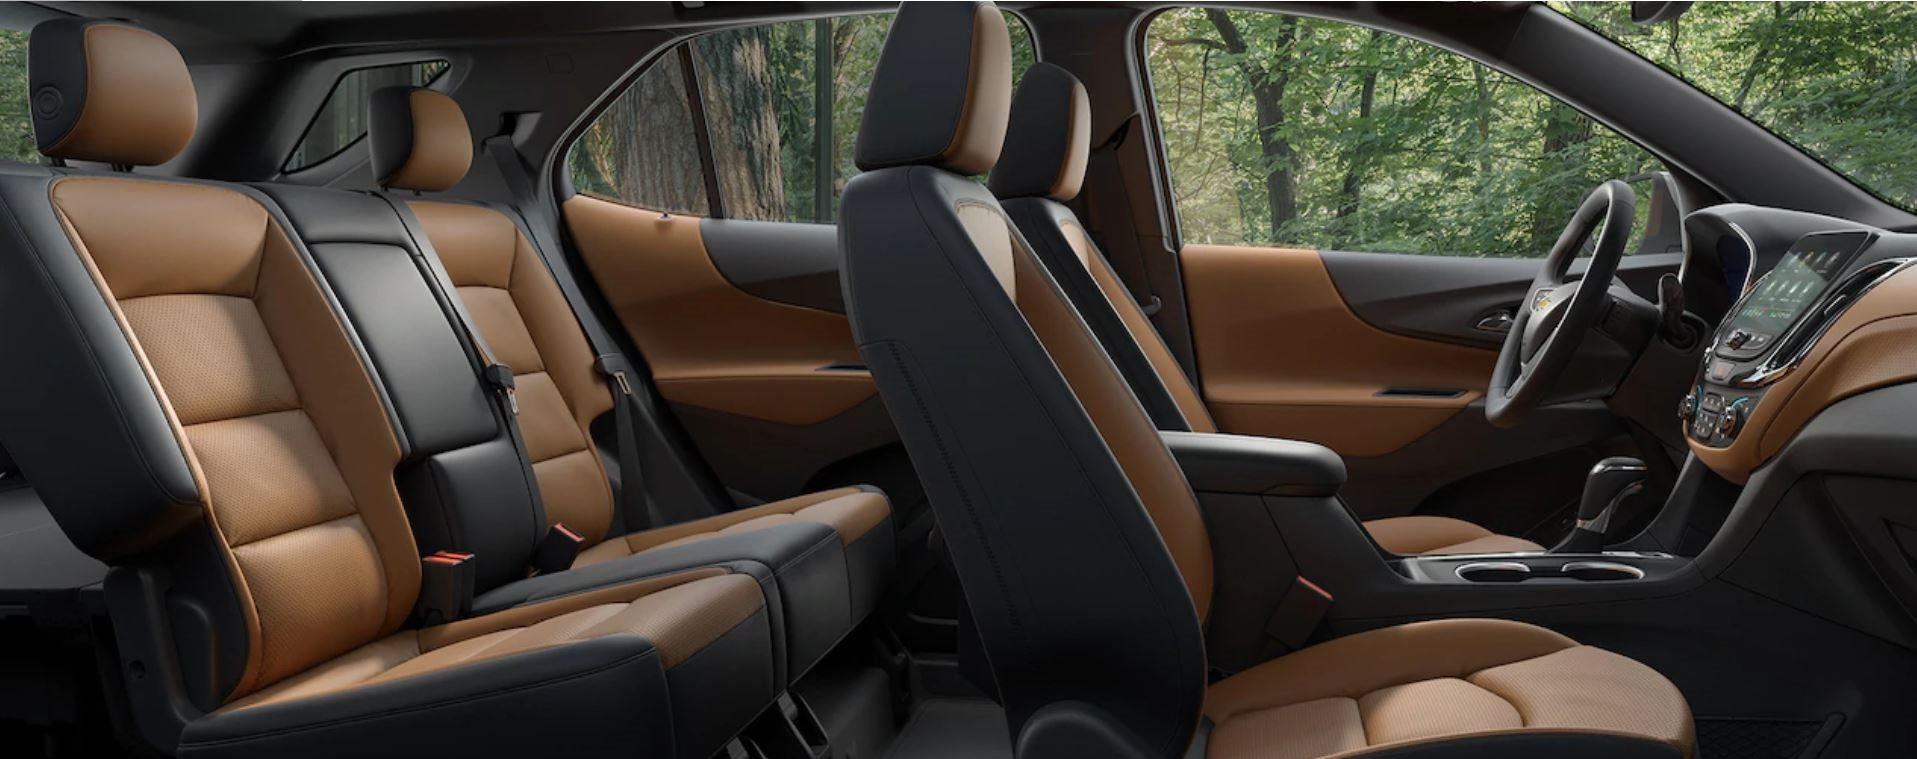 2019 Chevrolet Equinox Spacious Seating